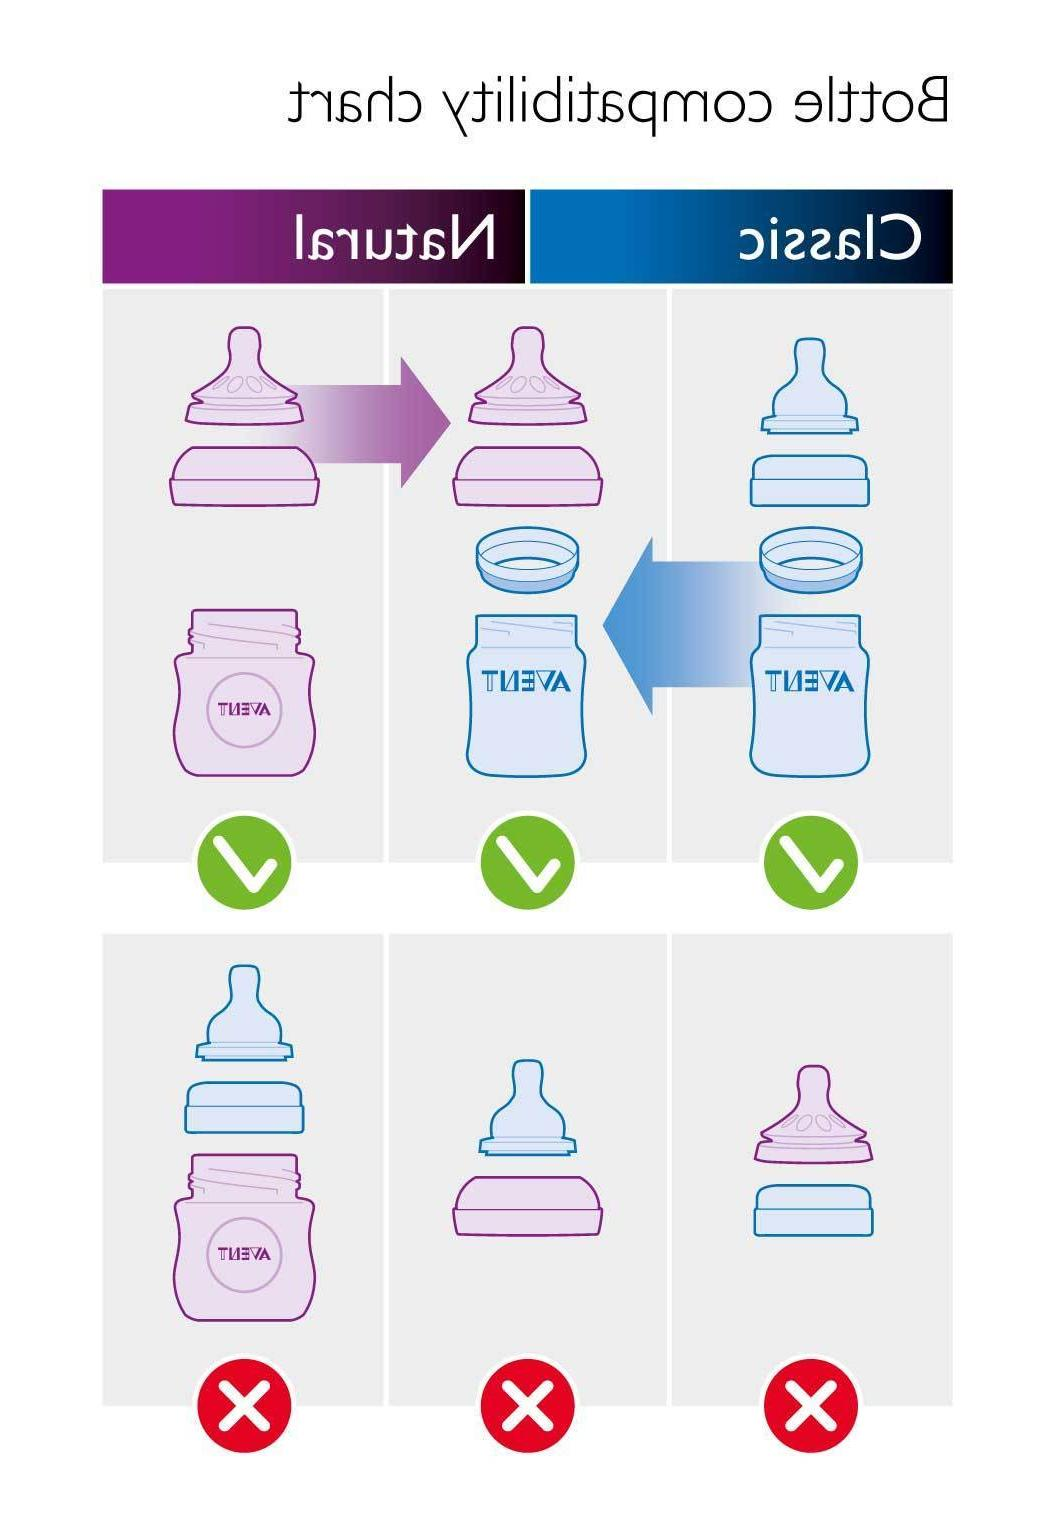 Avent Adapter 3 Use Classic Bottles the Anti-Colic